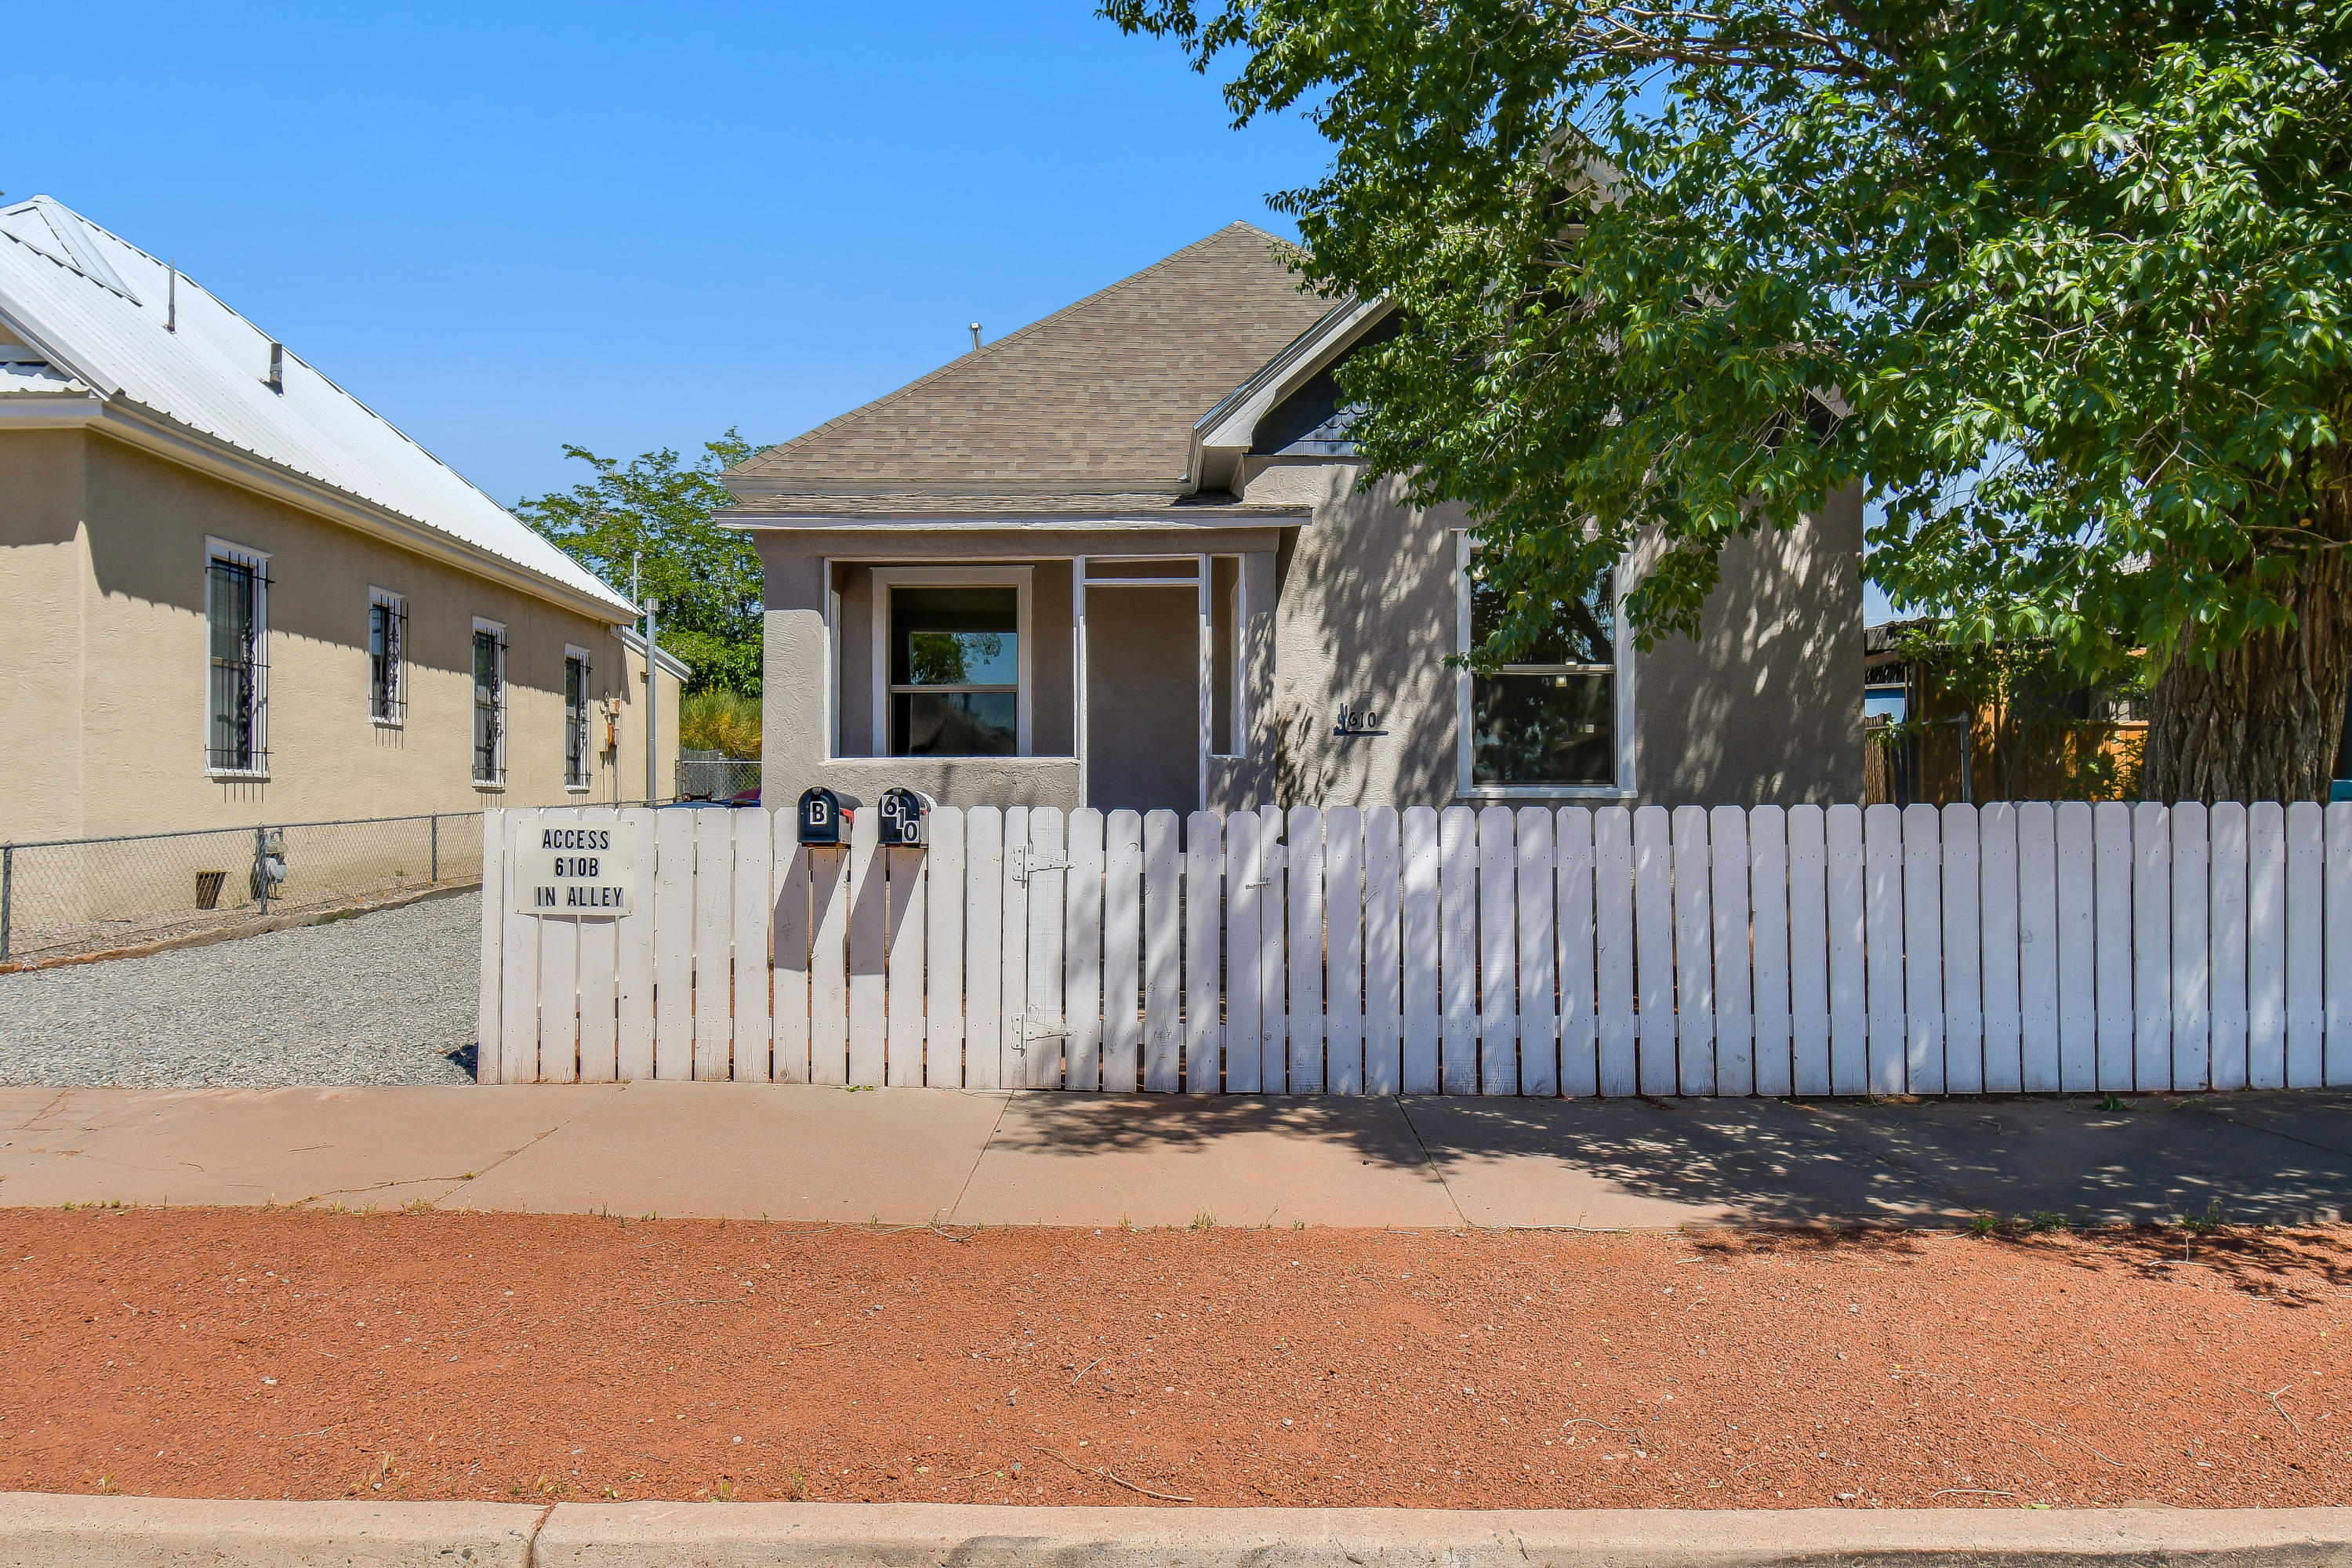 Recent remodeled main and guest house, both with new roofs, near downtown and hospital. Main home features granite counter tops refrigerated air and central heat. Guest house is a gorgeous 2 bed 1 bath perfect for any guests or rent out in highly desired neighborhood.